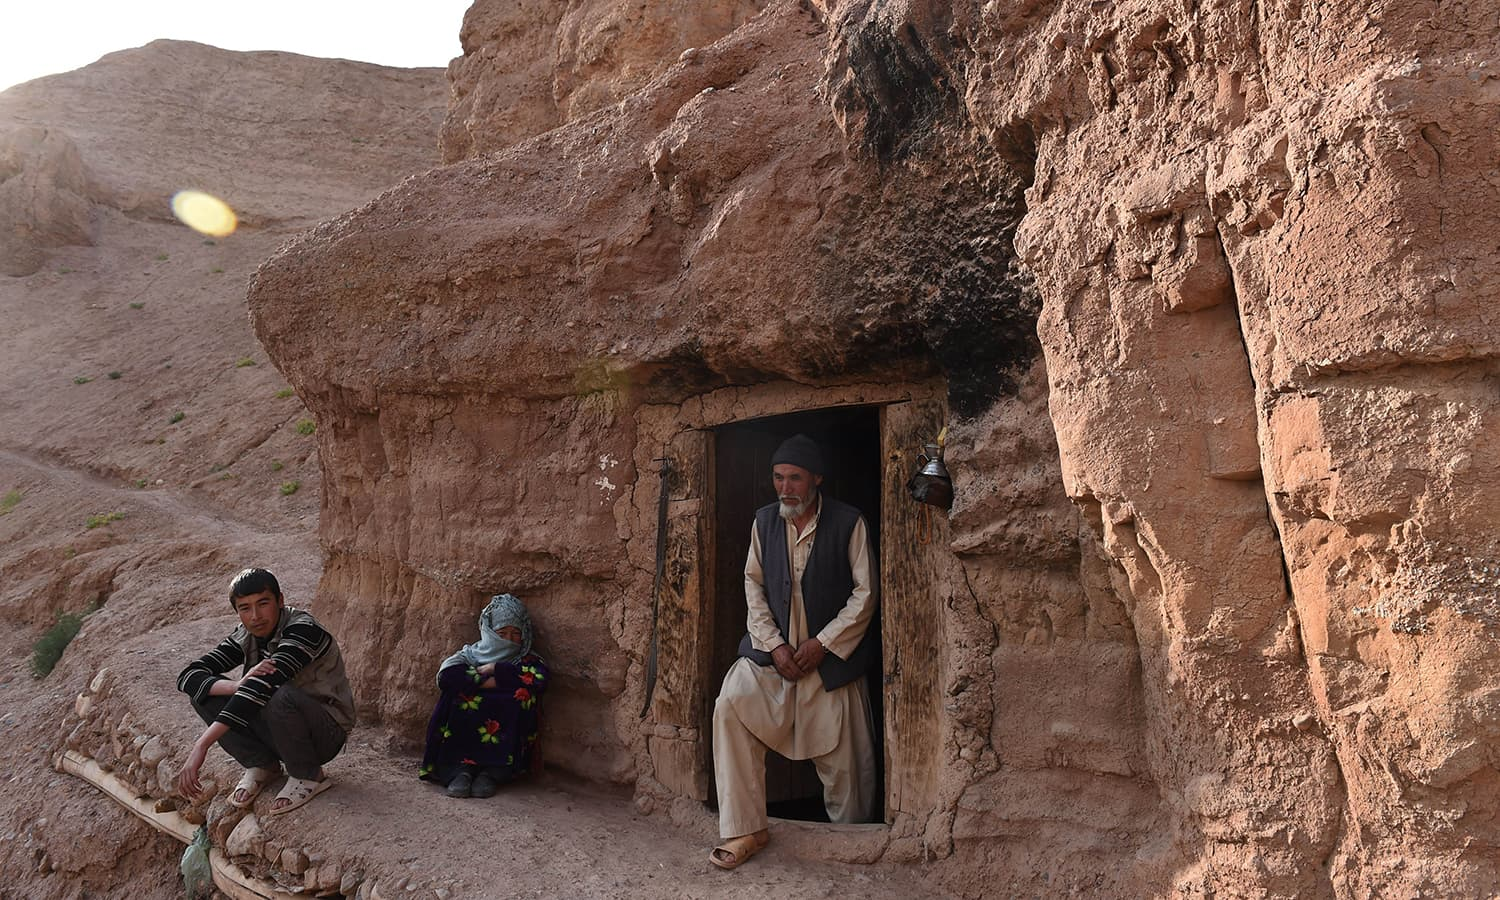 In this photograph taken on June 19, 2015, a Hazara Afghan family look on in front of their cave in the old city of Bamiyan, some 200 kilometres (124 miles) northwest of Kabul. ─ AFP